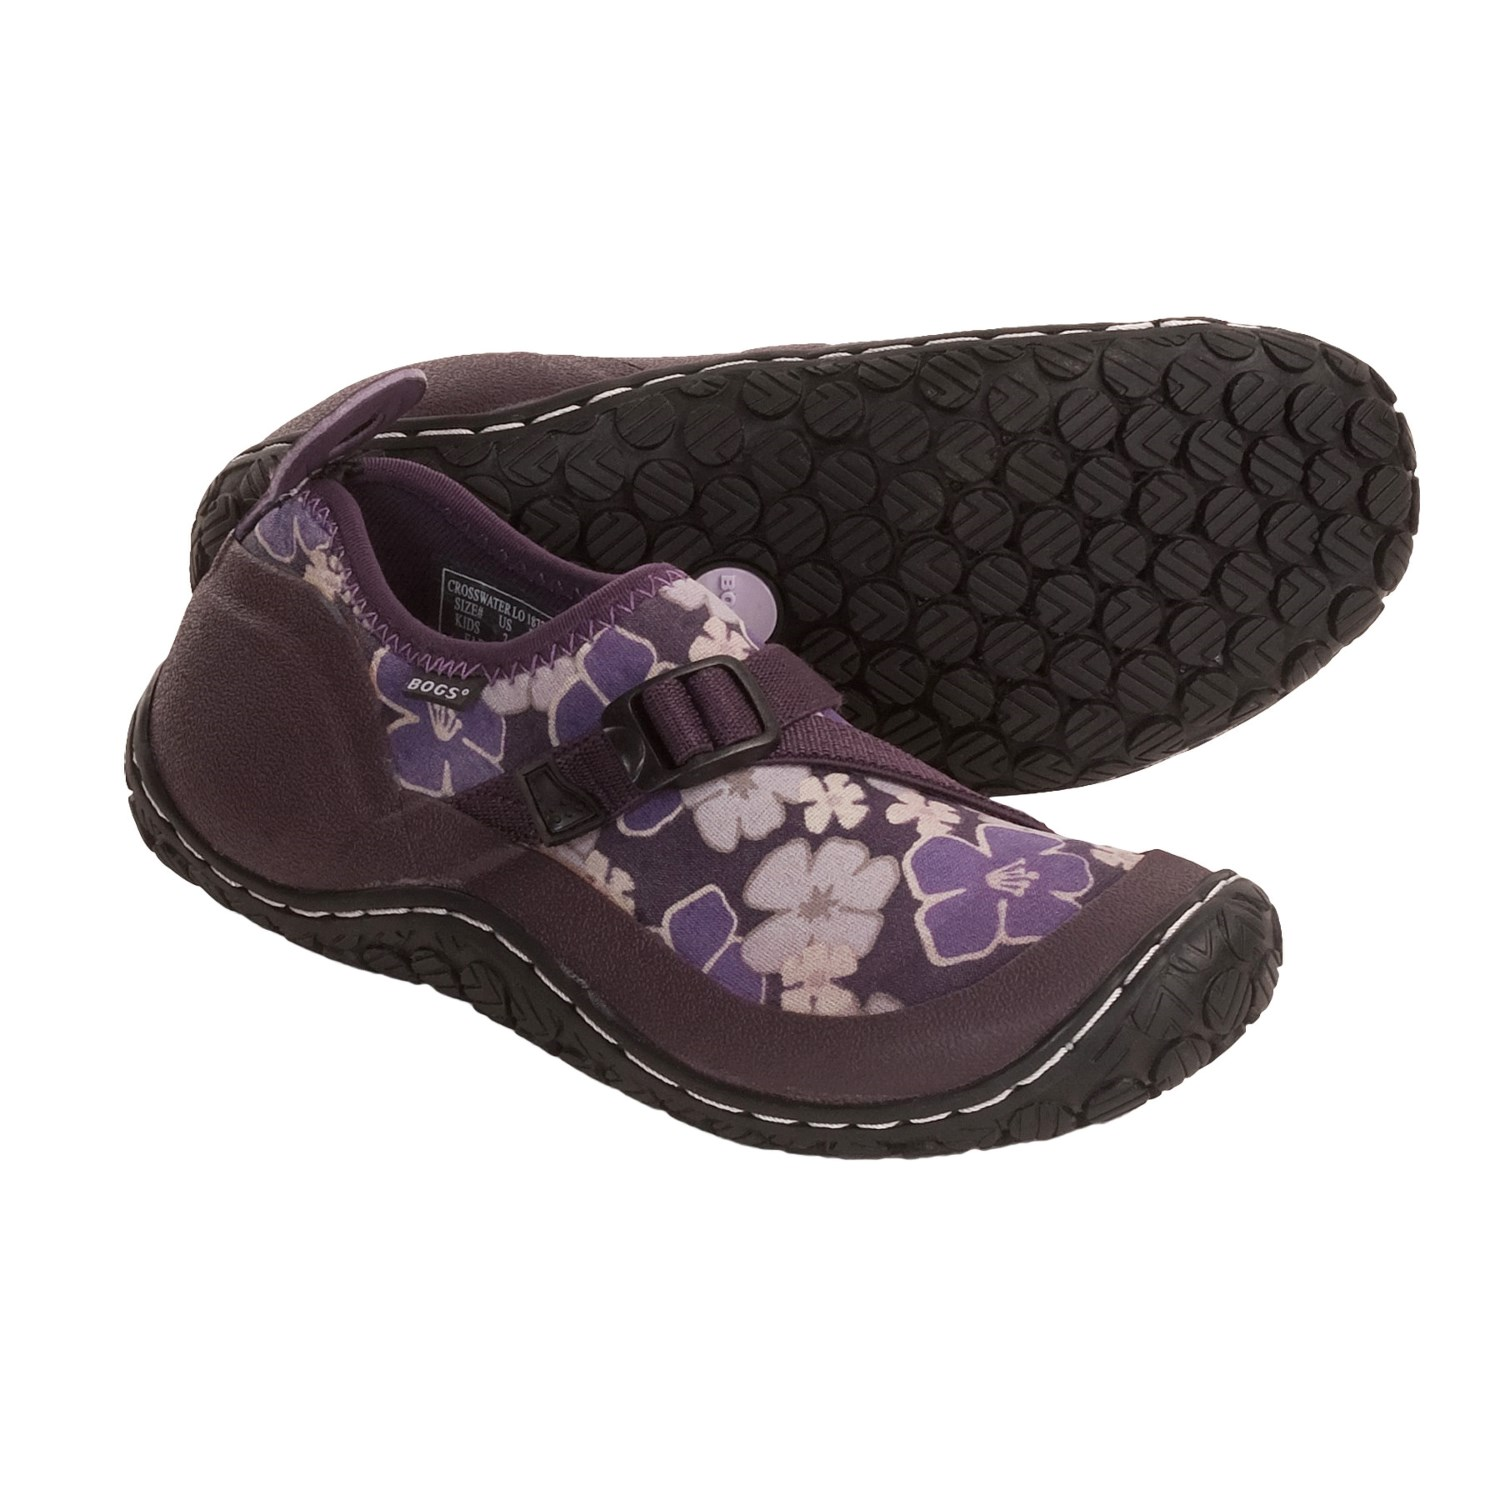 Free shipping BOTH ways on water shoes for kids, from our vast selection of styles. Fast delivery, and 24/7/ real-person service with a smile. Click or call